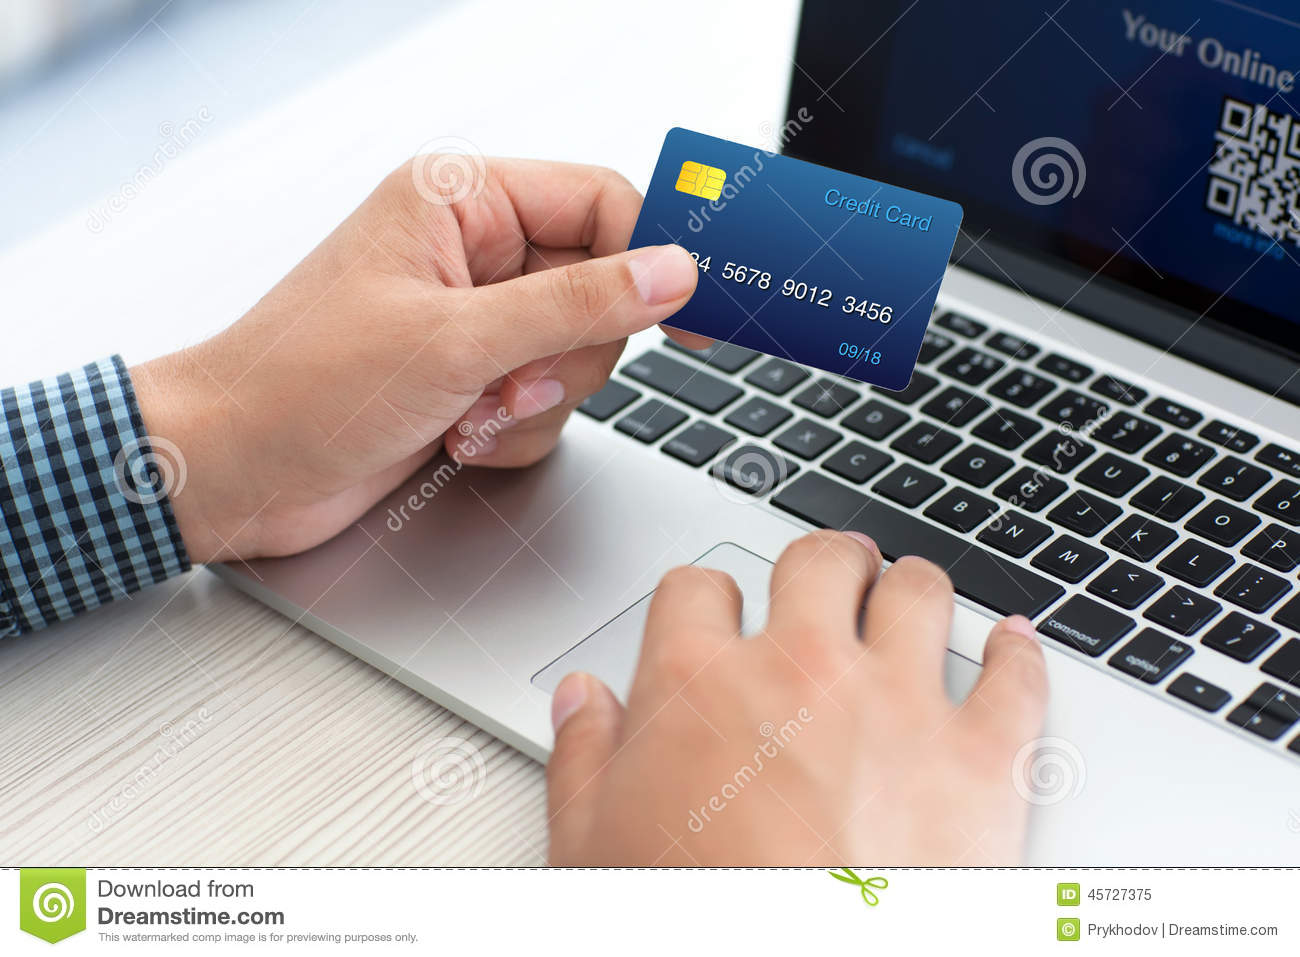 man-doing-online-shopping-credit-card-laptop-45727375.jpg